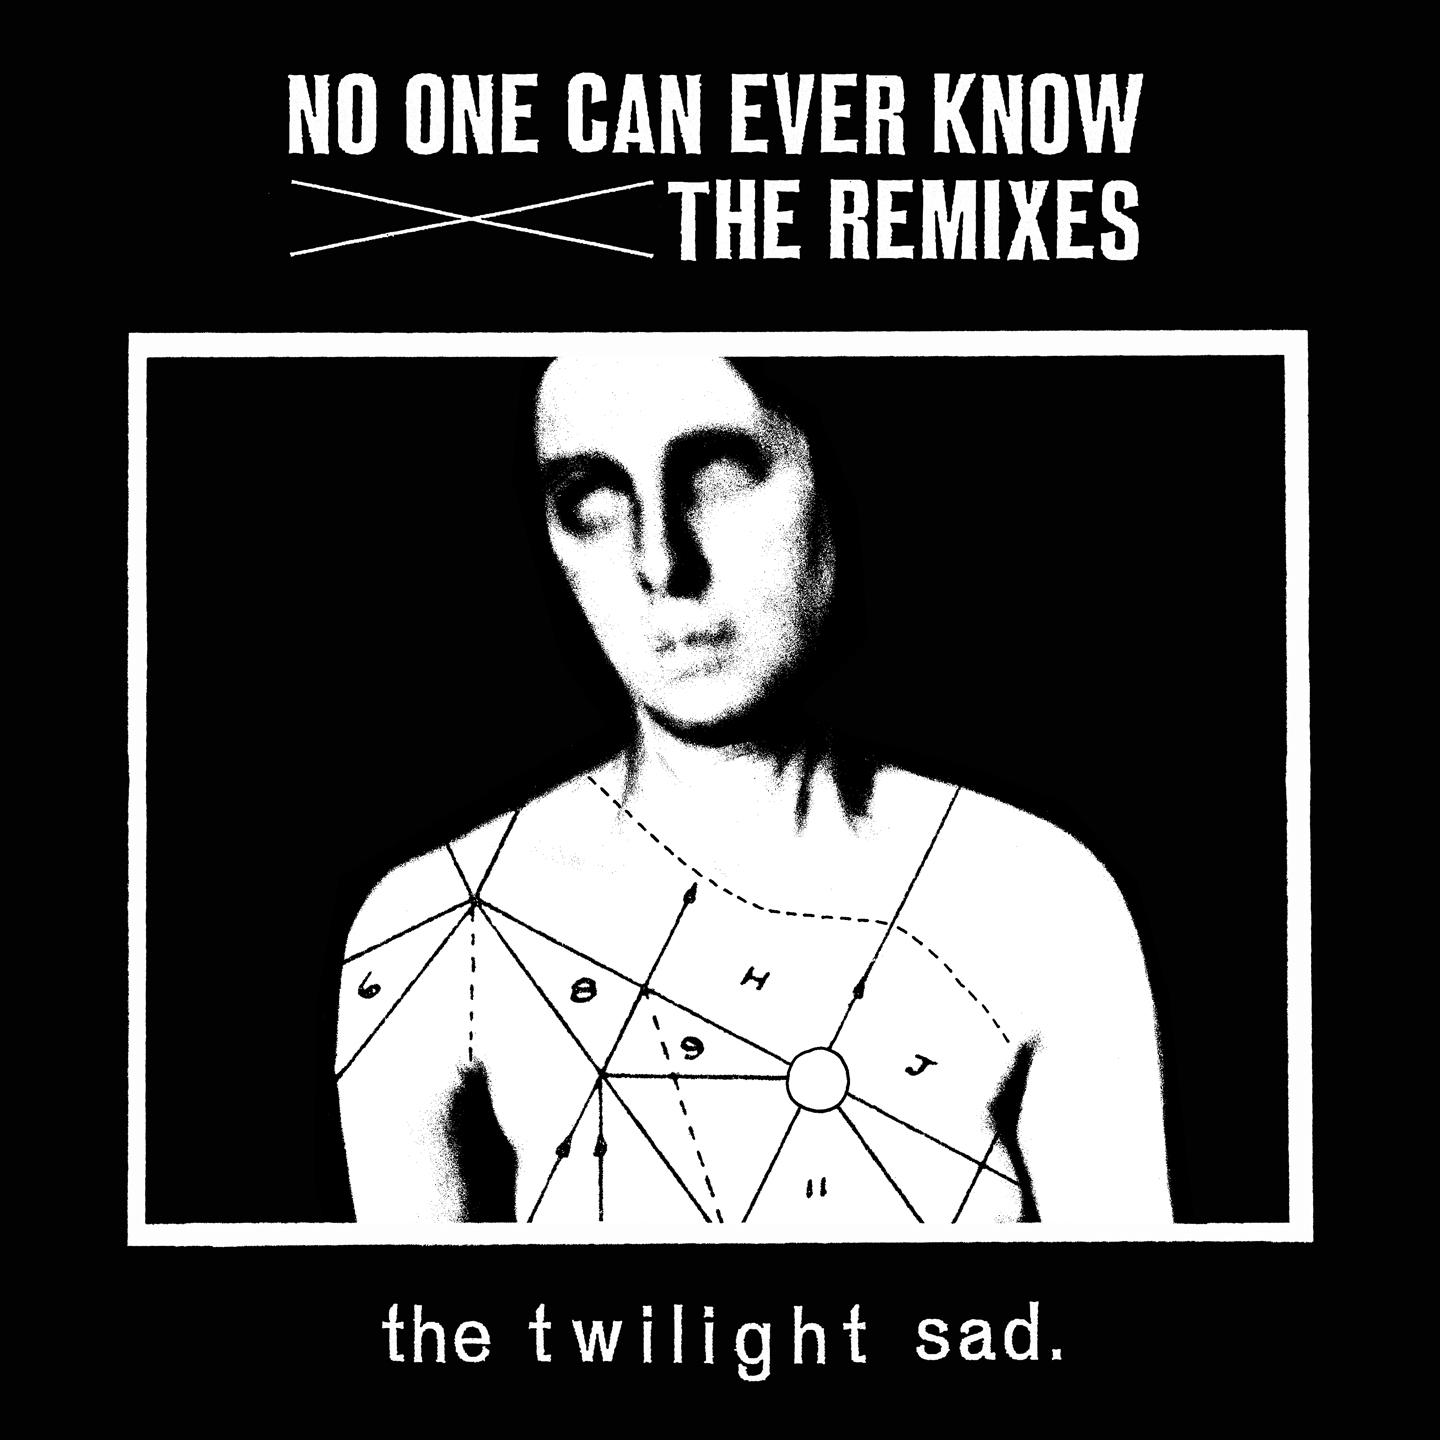 CD Album - No One Can Ever Know The Remixes - The Twilight Sad